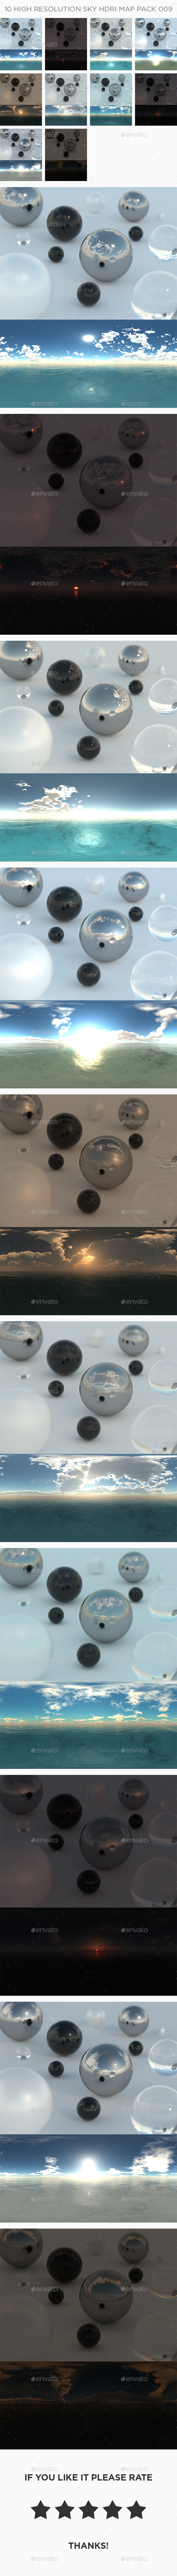 10 High Resolution Sky HDRi Maps Pack 009 - 3DOcean Item for Sale